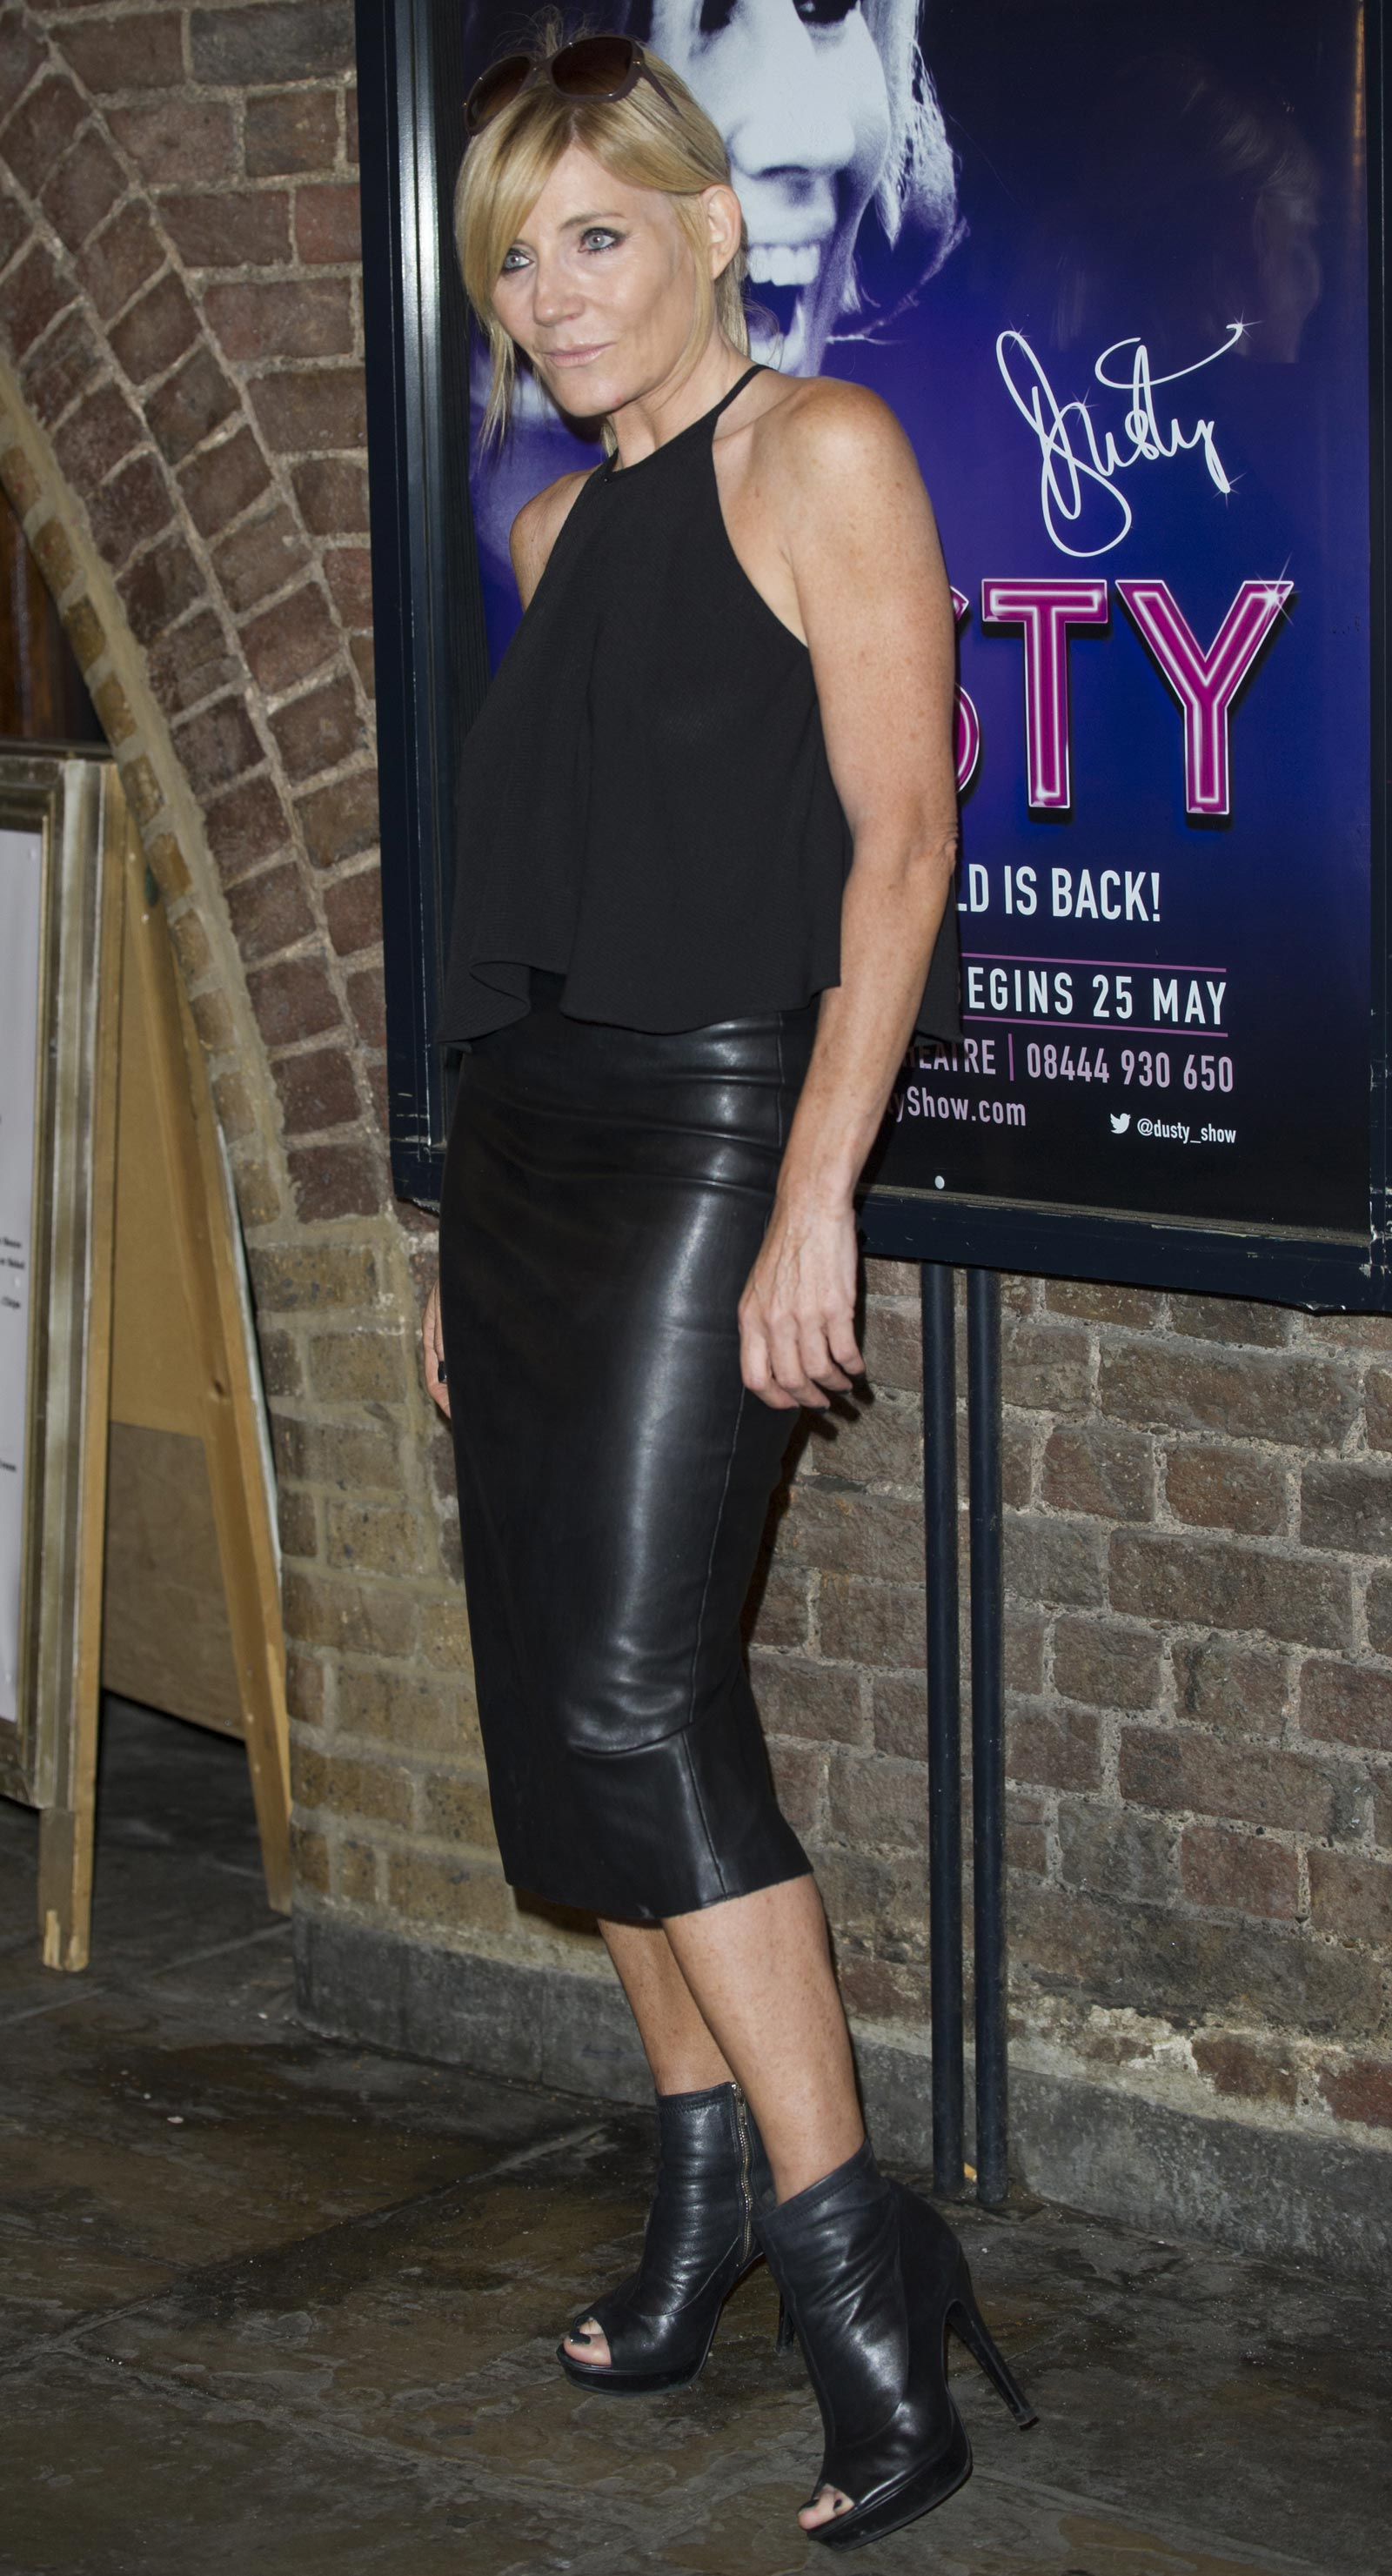 Michelle Collins attends Dusty Gala night